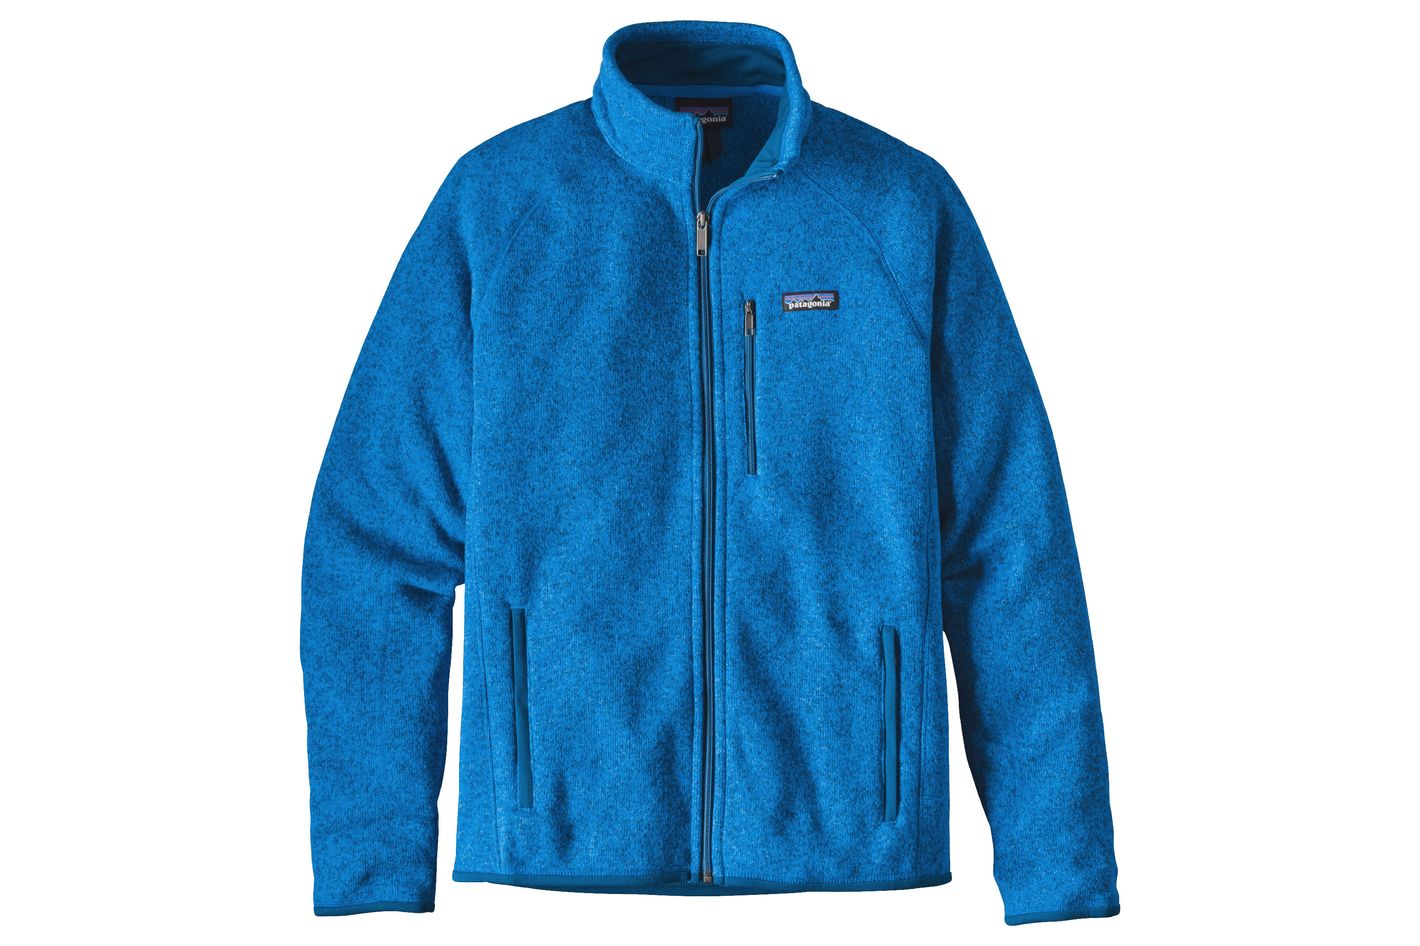 Patagonia Better Sweater Fleece Jacket in Andes Blue